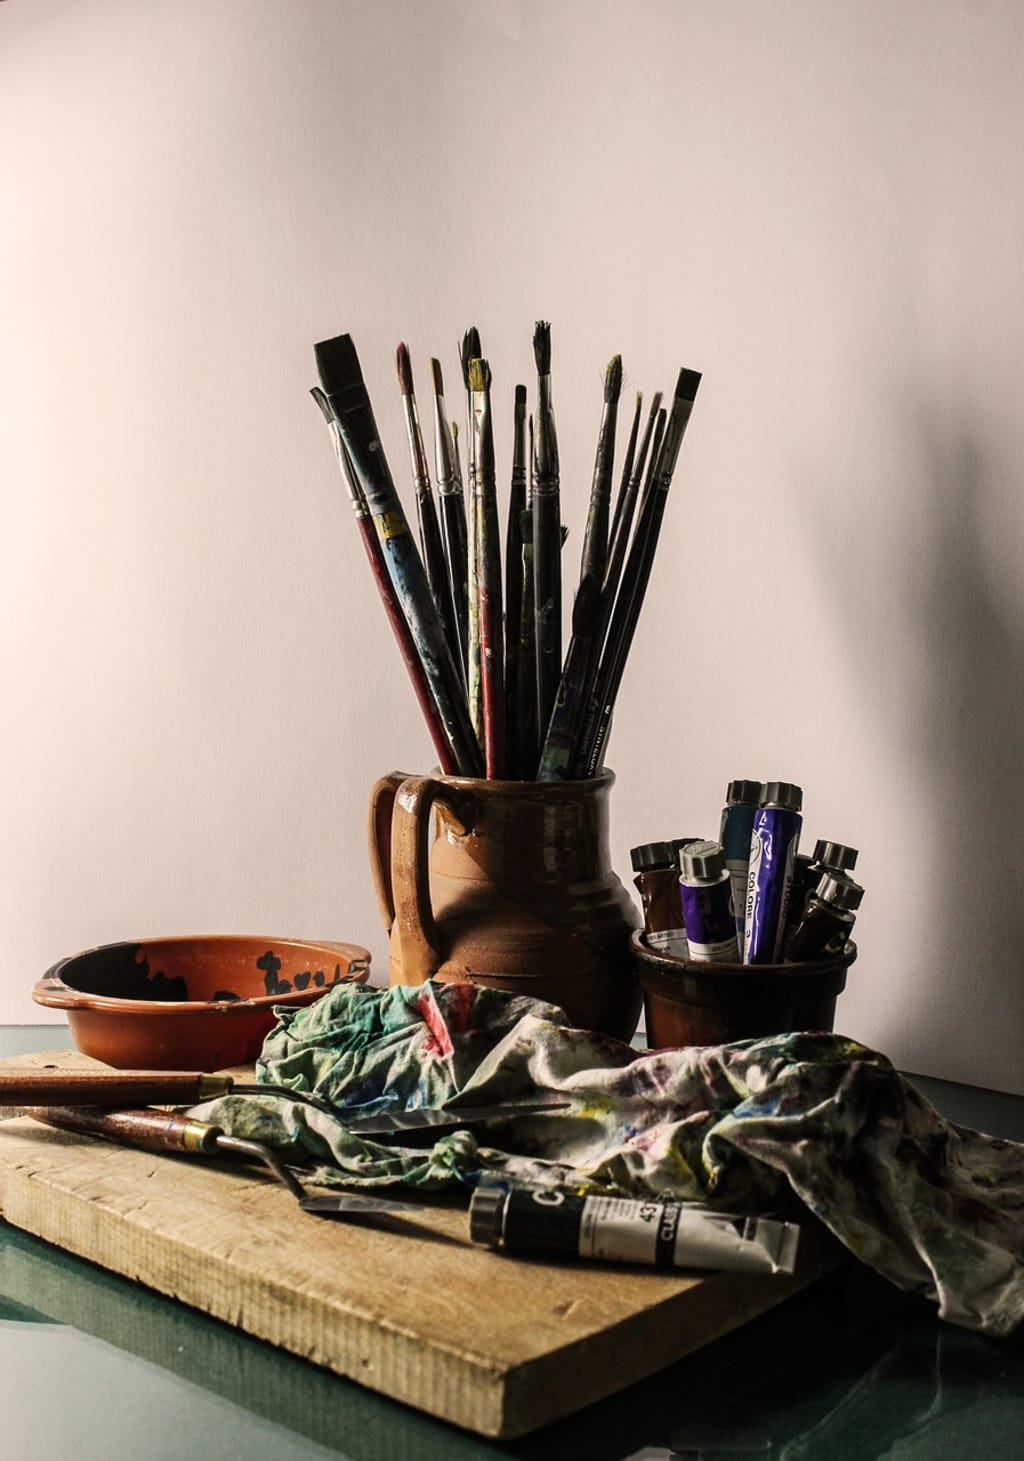 Oil Painting: The Absolute Beginner's Supply List